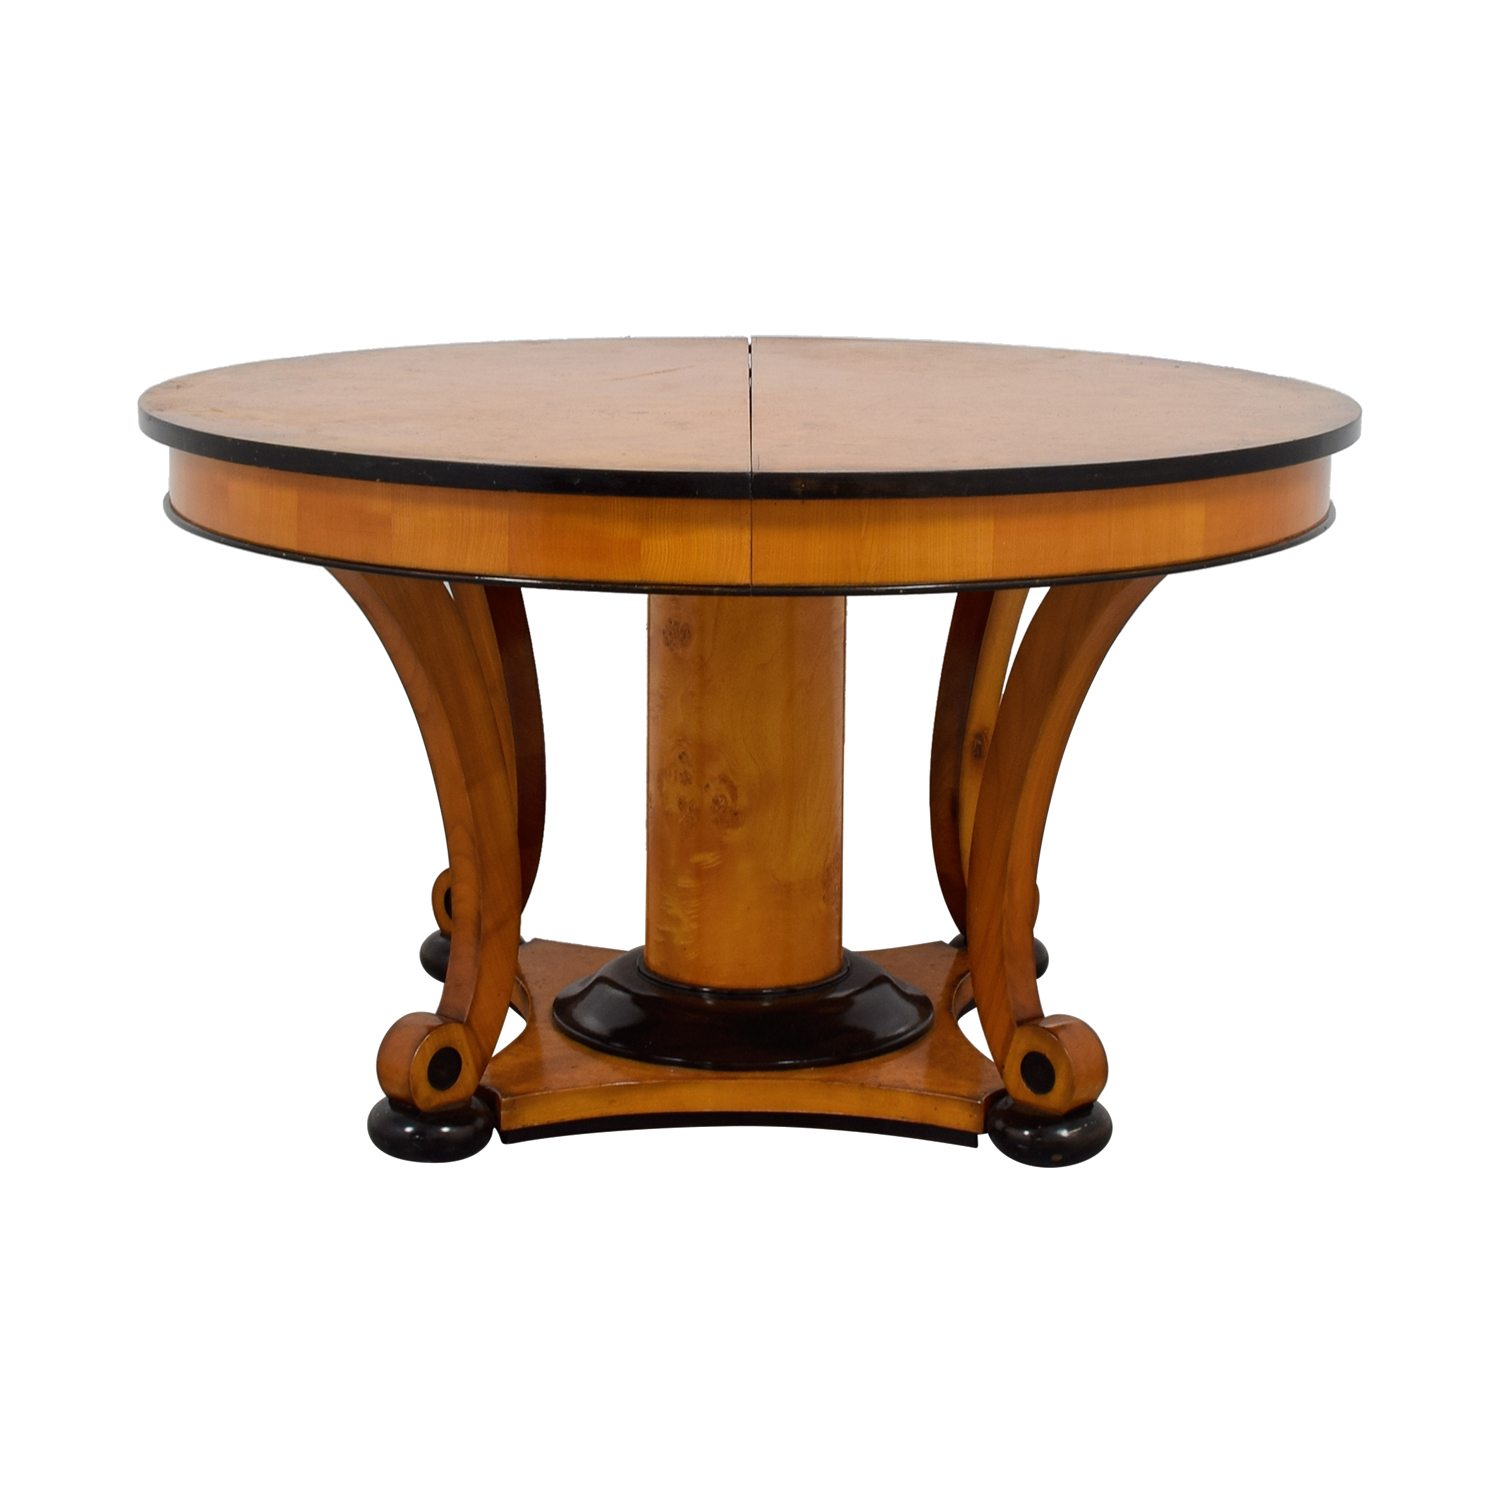 Bloomingdale's Beidermeider Round Cherry Wood  Dining Table Bloomingdale's